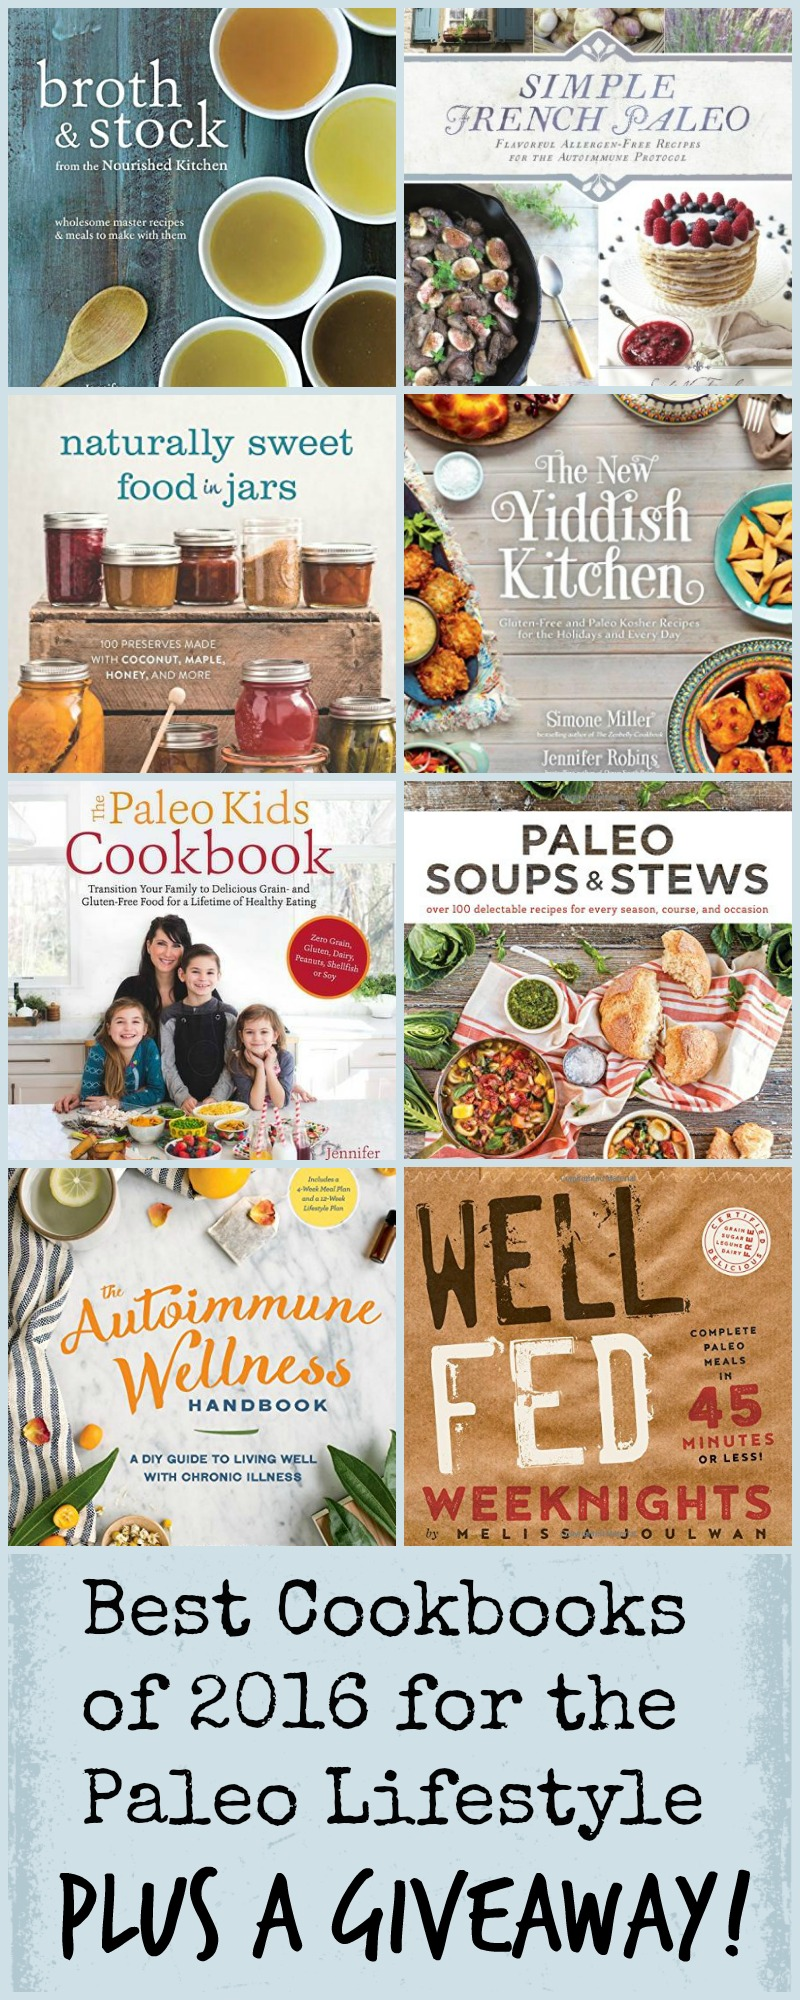 My Favorite Cookbooks for the Paleo Lifestyle 2016